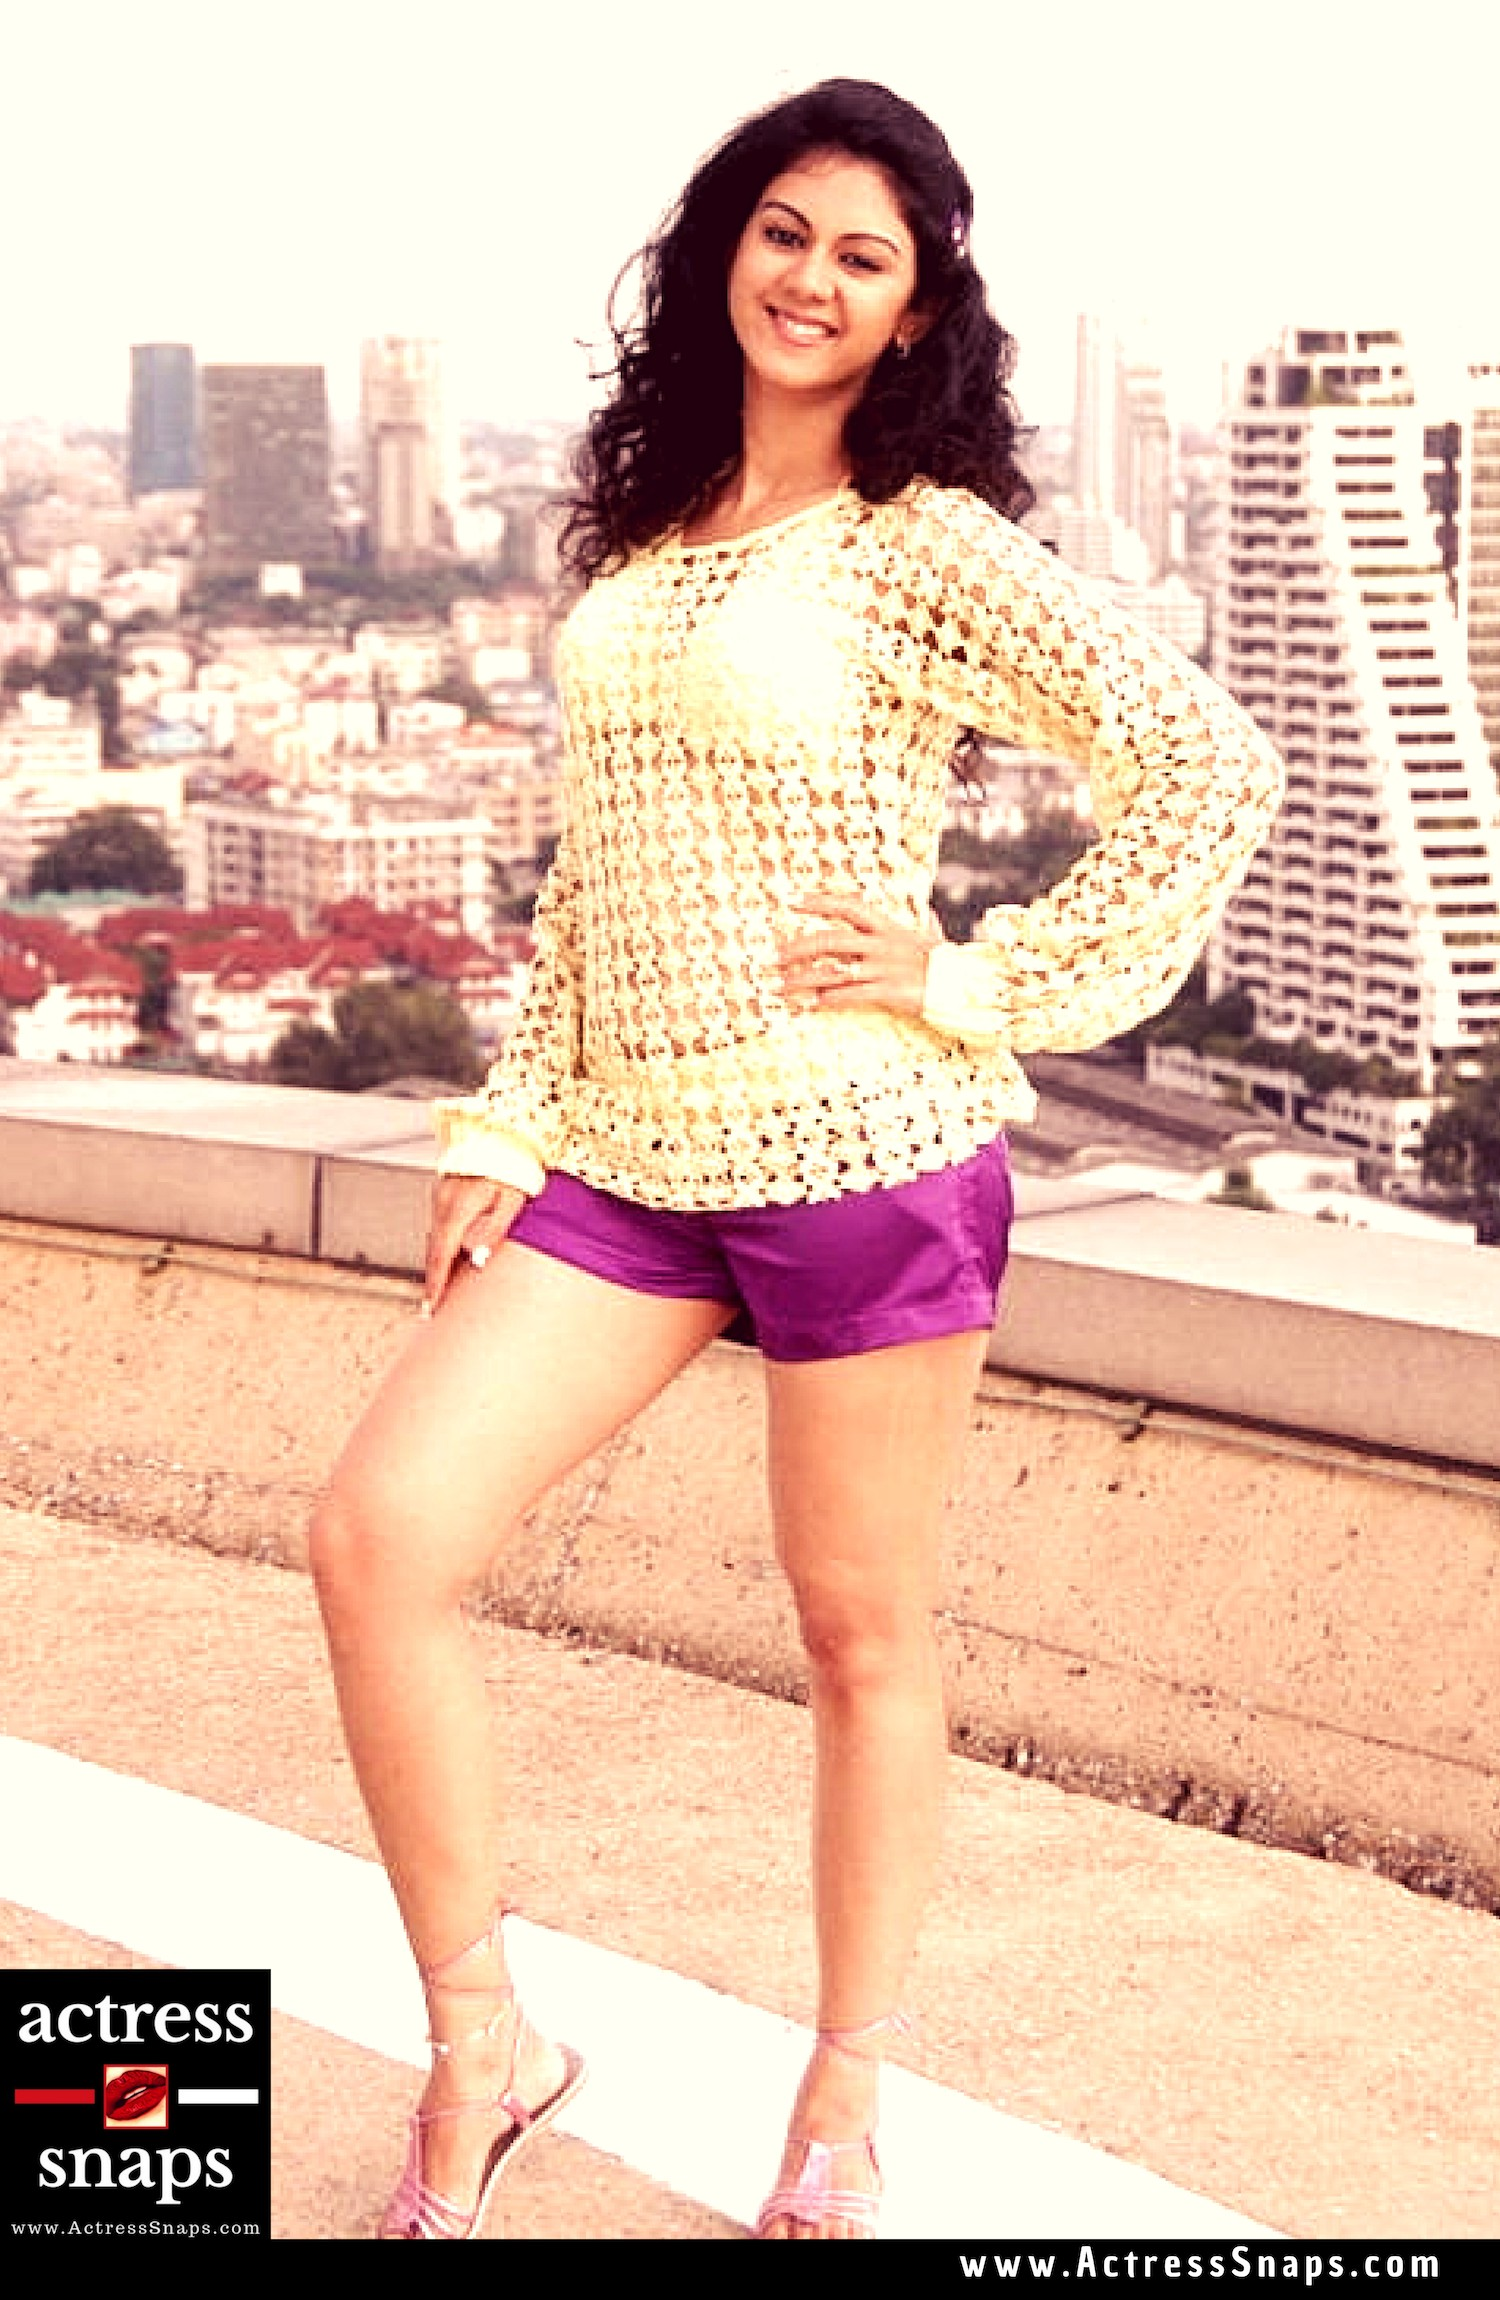 Sexy kamna Jethmalani Photos Collections - Sexy Actress Pictures | Hot Actress Pictures - ActressSnaps.com